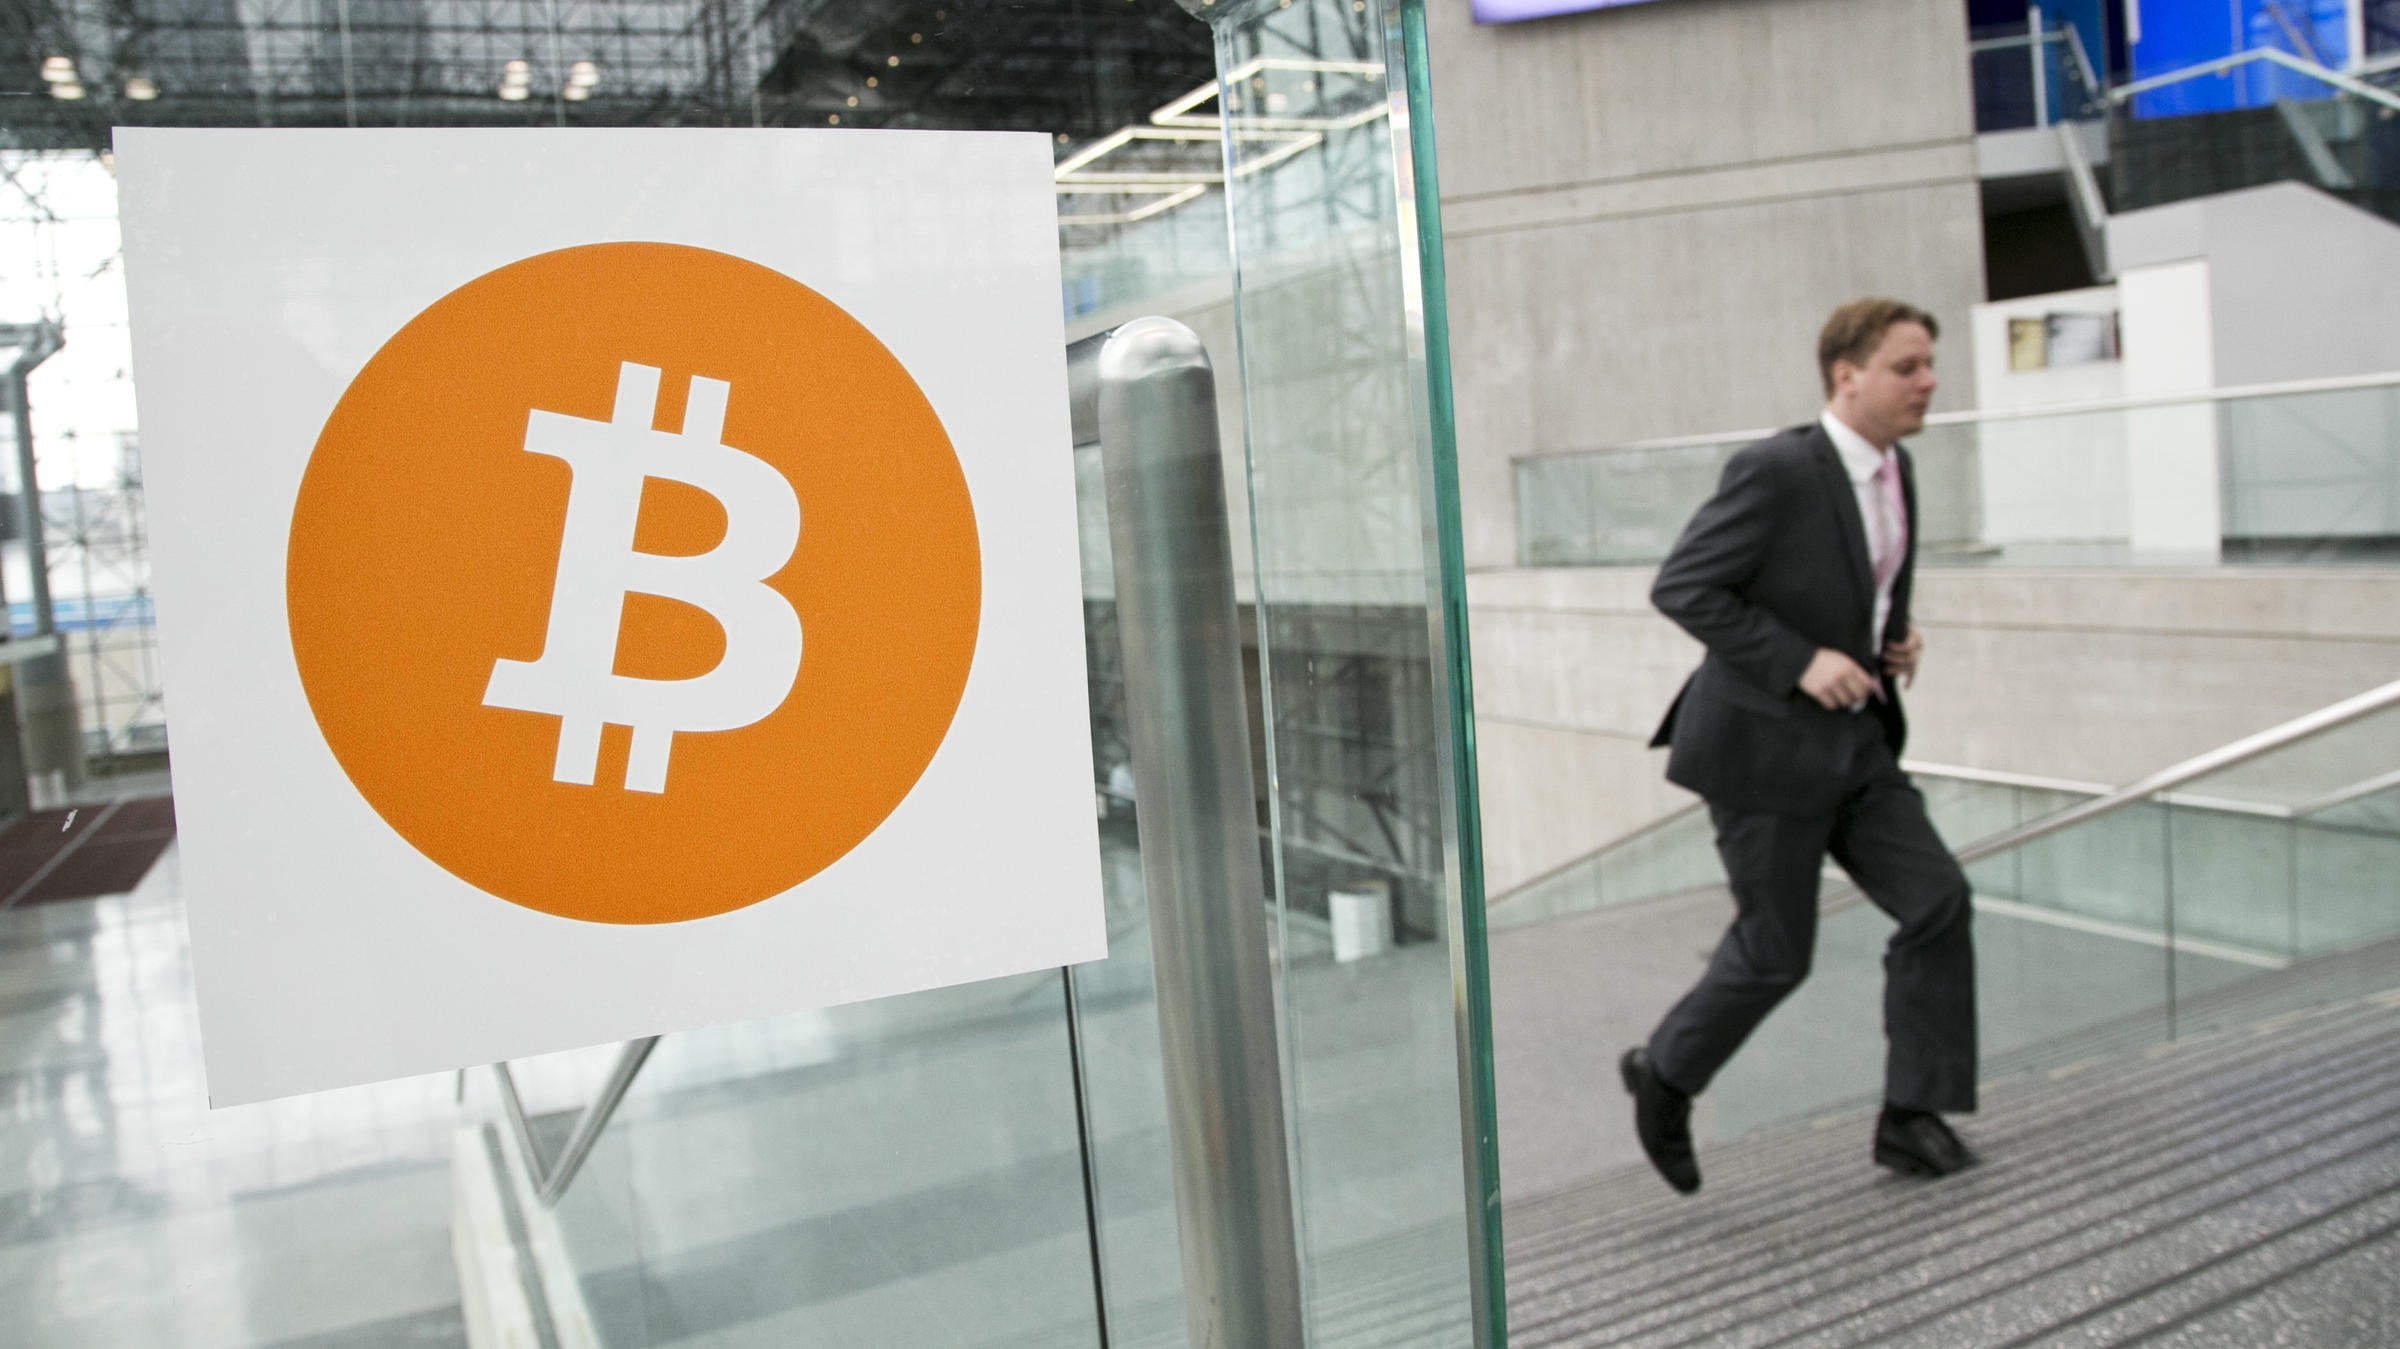 Bitcoin's Maker Revealed? Australian Man Says He Is ...